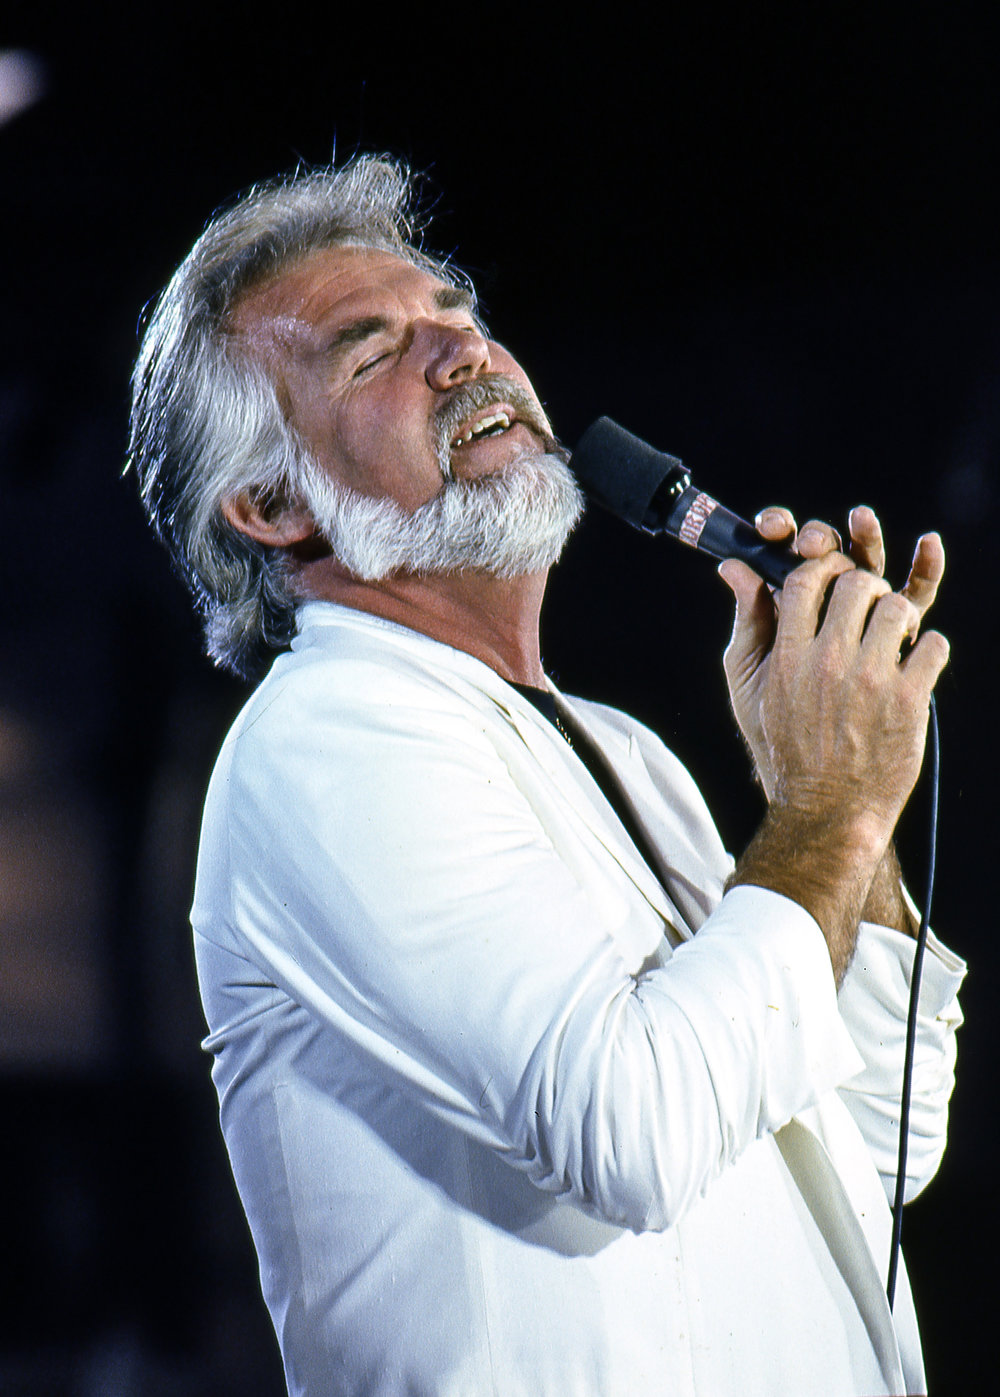 Kenny Rogers in a familiar pose during his performance at the Farm Aid concert at Memorial Stadium in Champaign, Ill. Sept. 22, 1985. [File/The State Journal-Register]